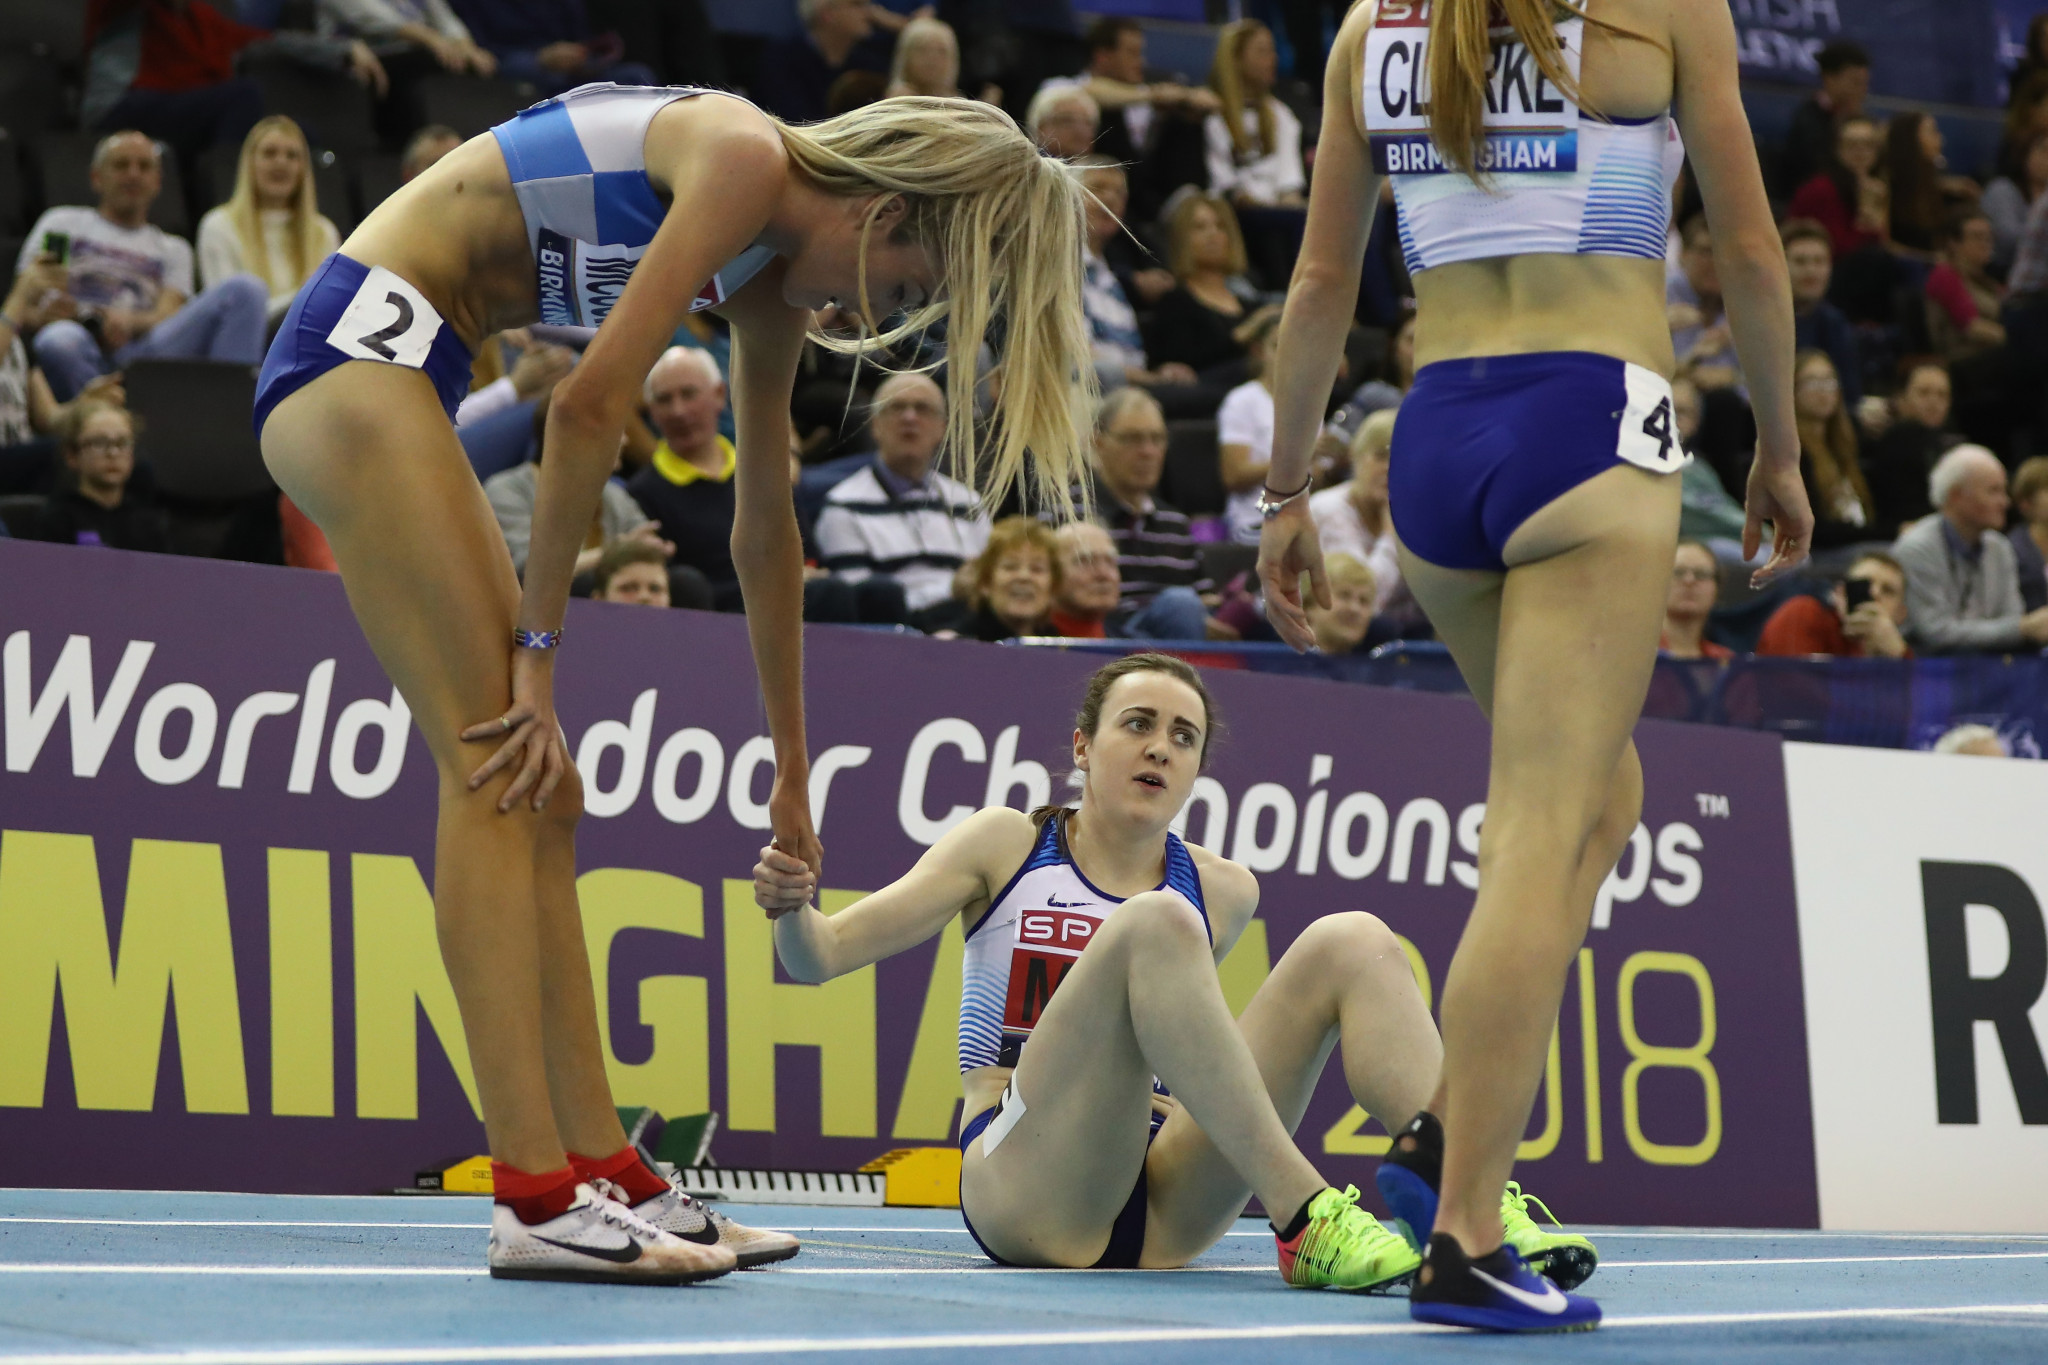 US set for another golden showing at IAAF World Indoor Championships in Birmingham